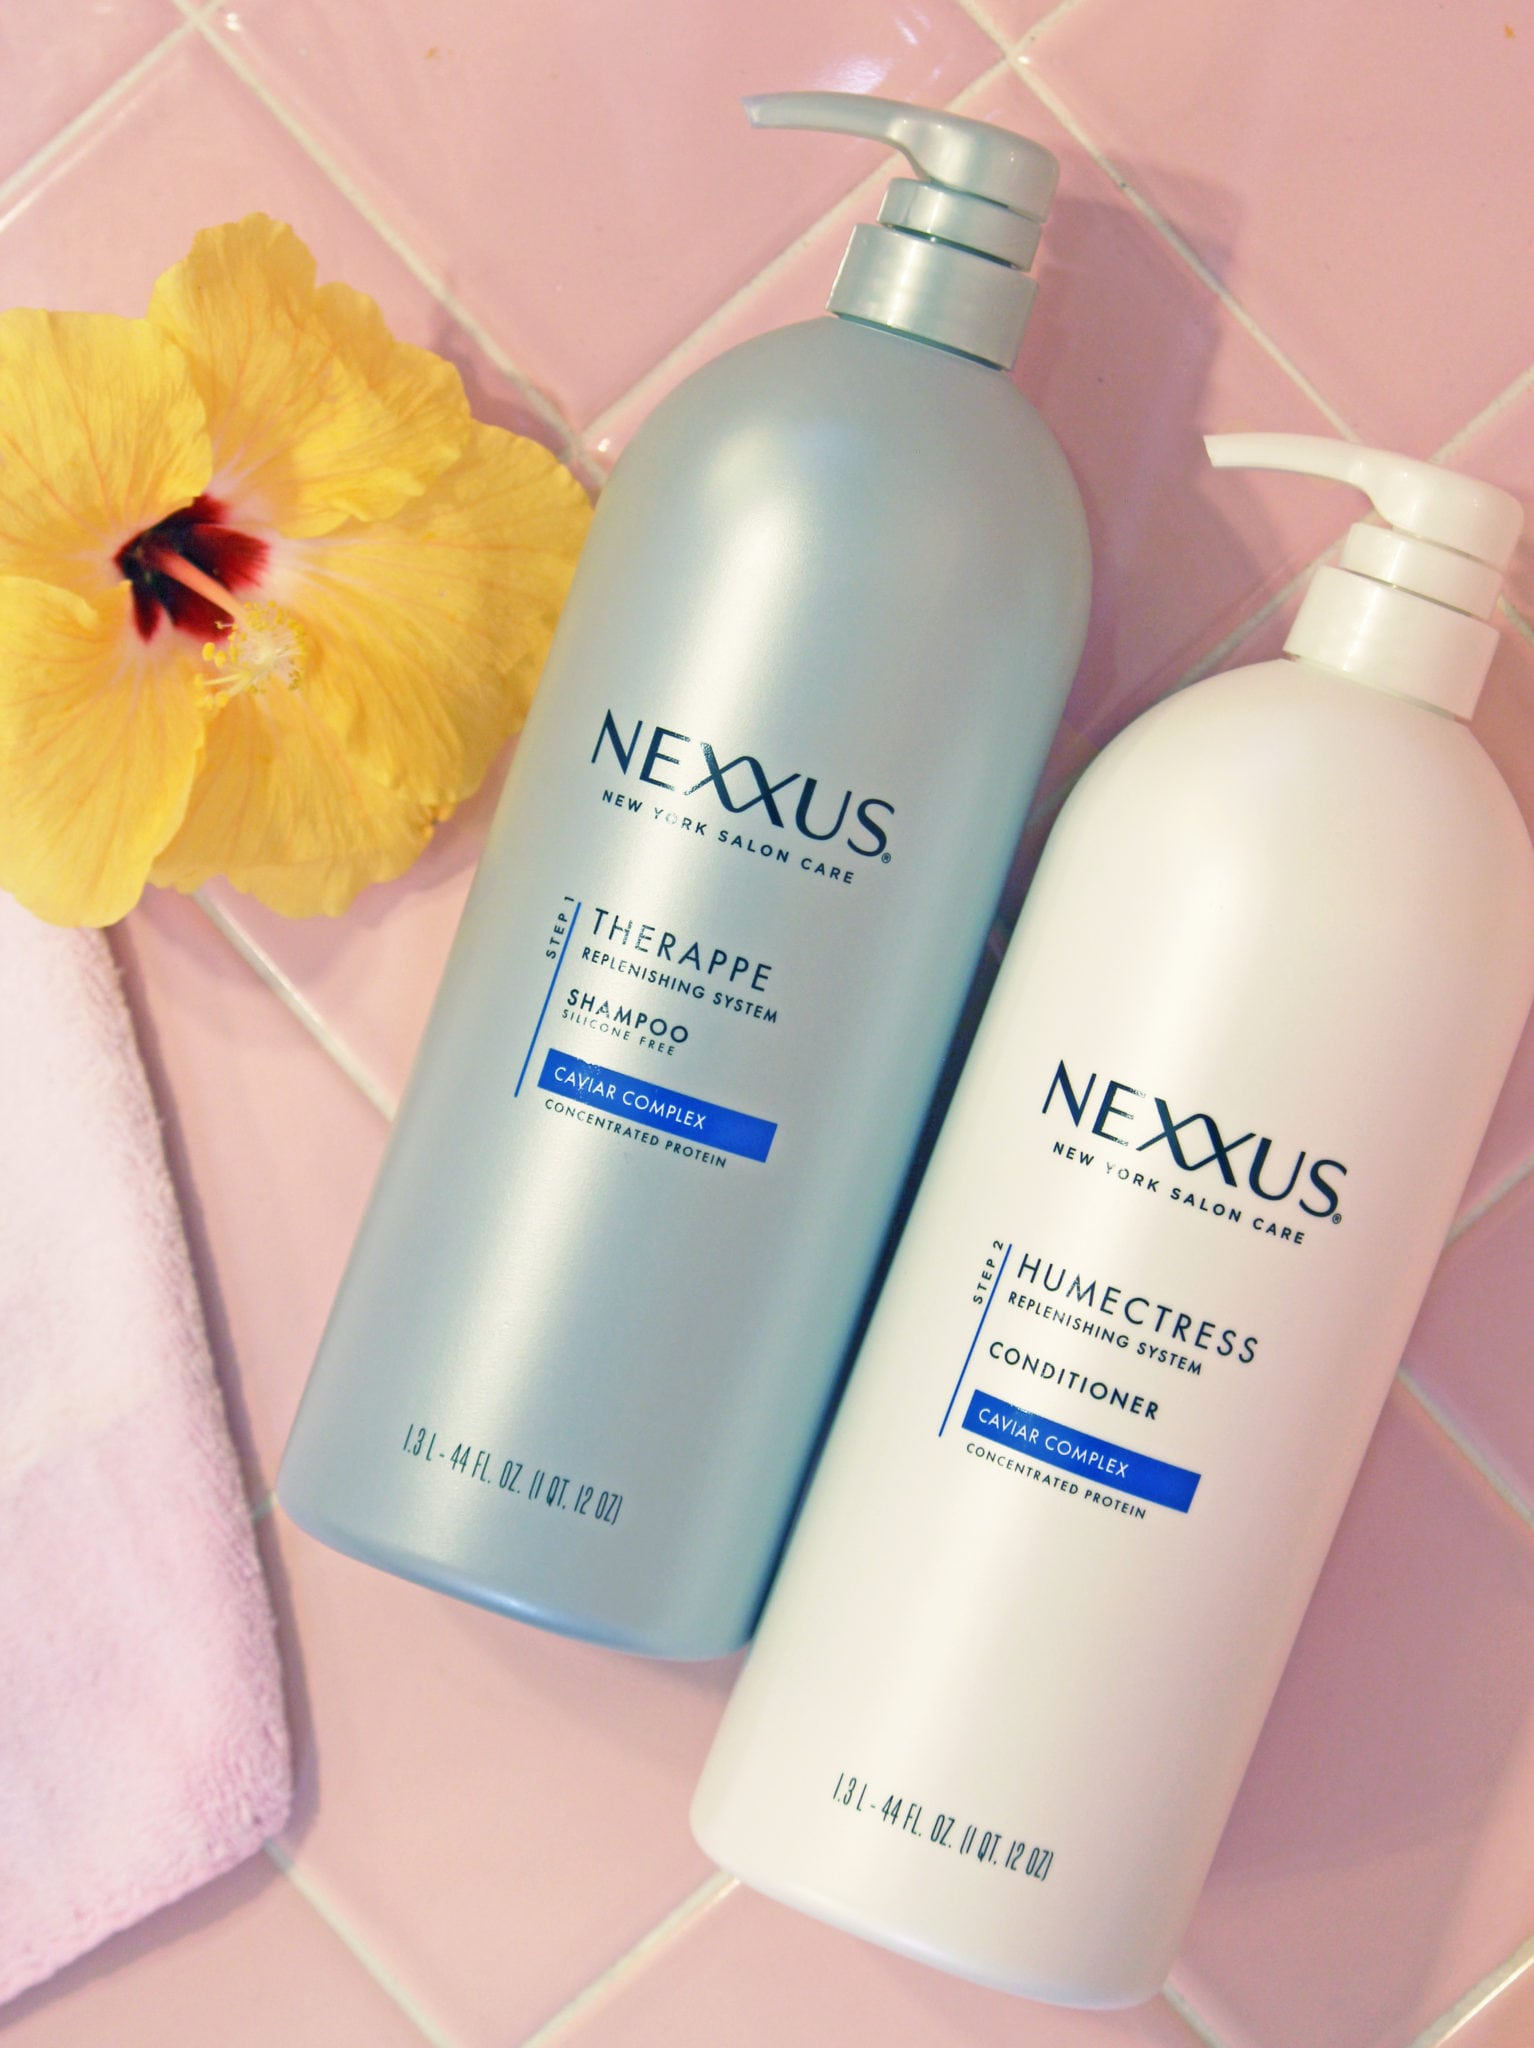 Beauty blogger Mash Elle fun ways to style a scarf in the summer nexxus hair care